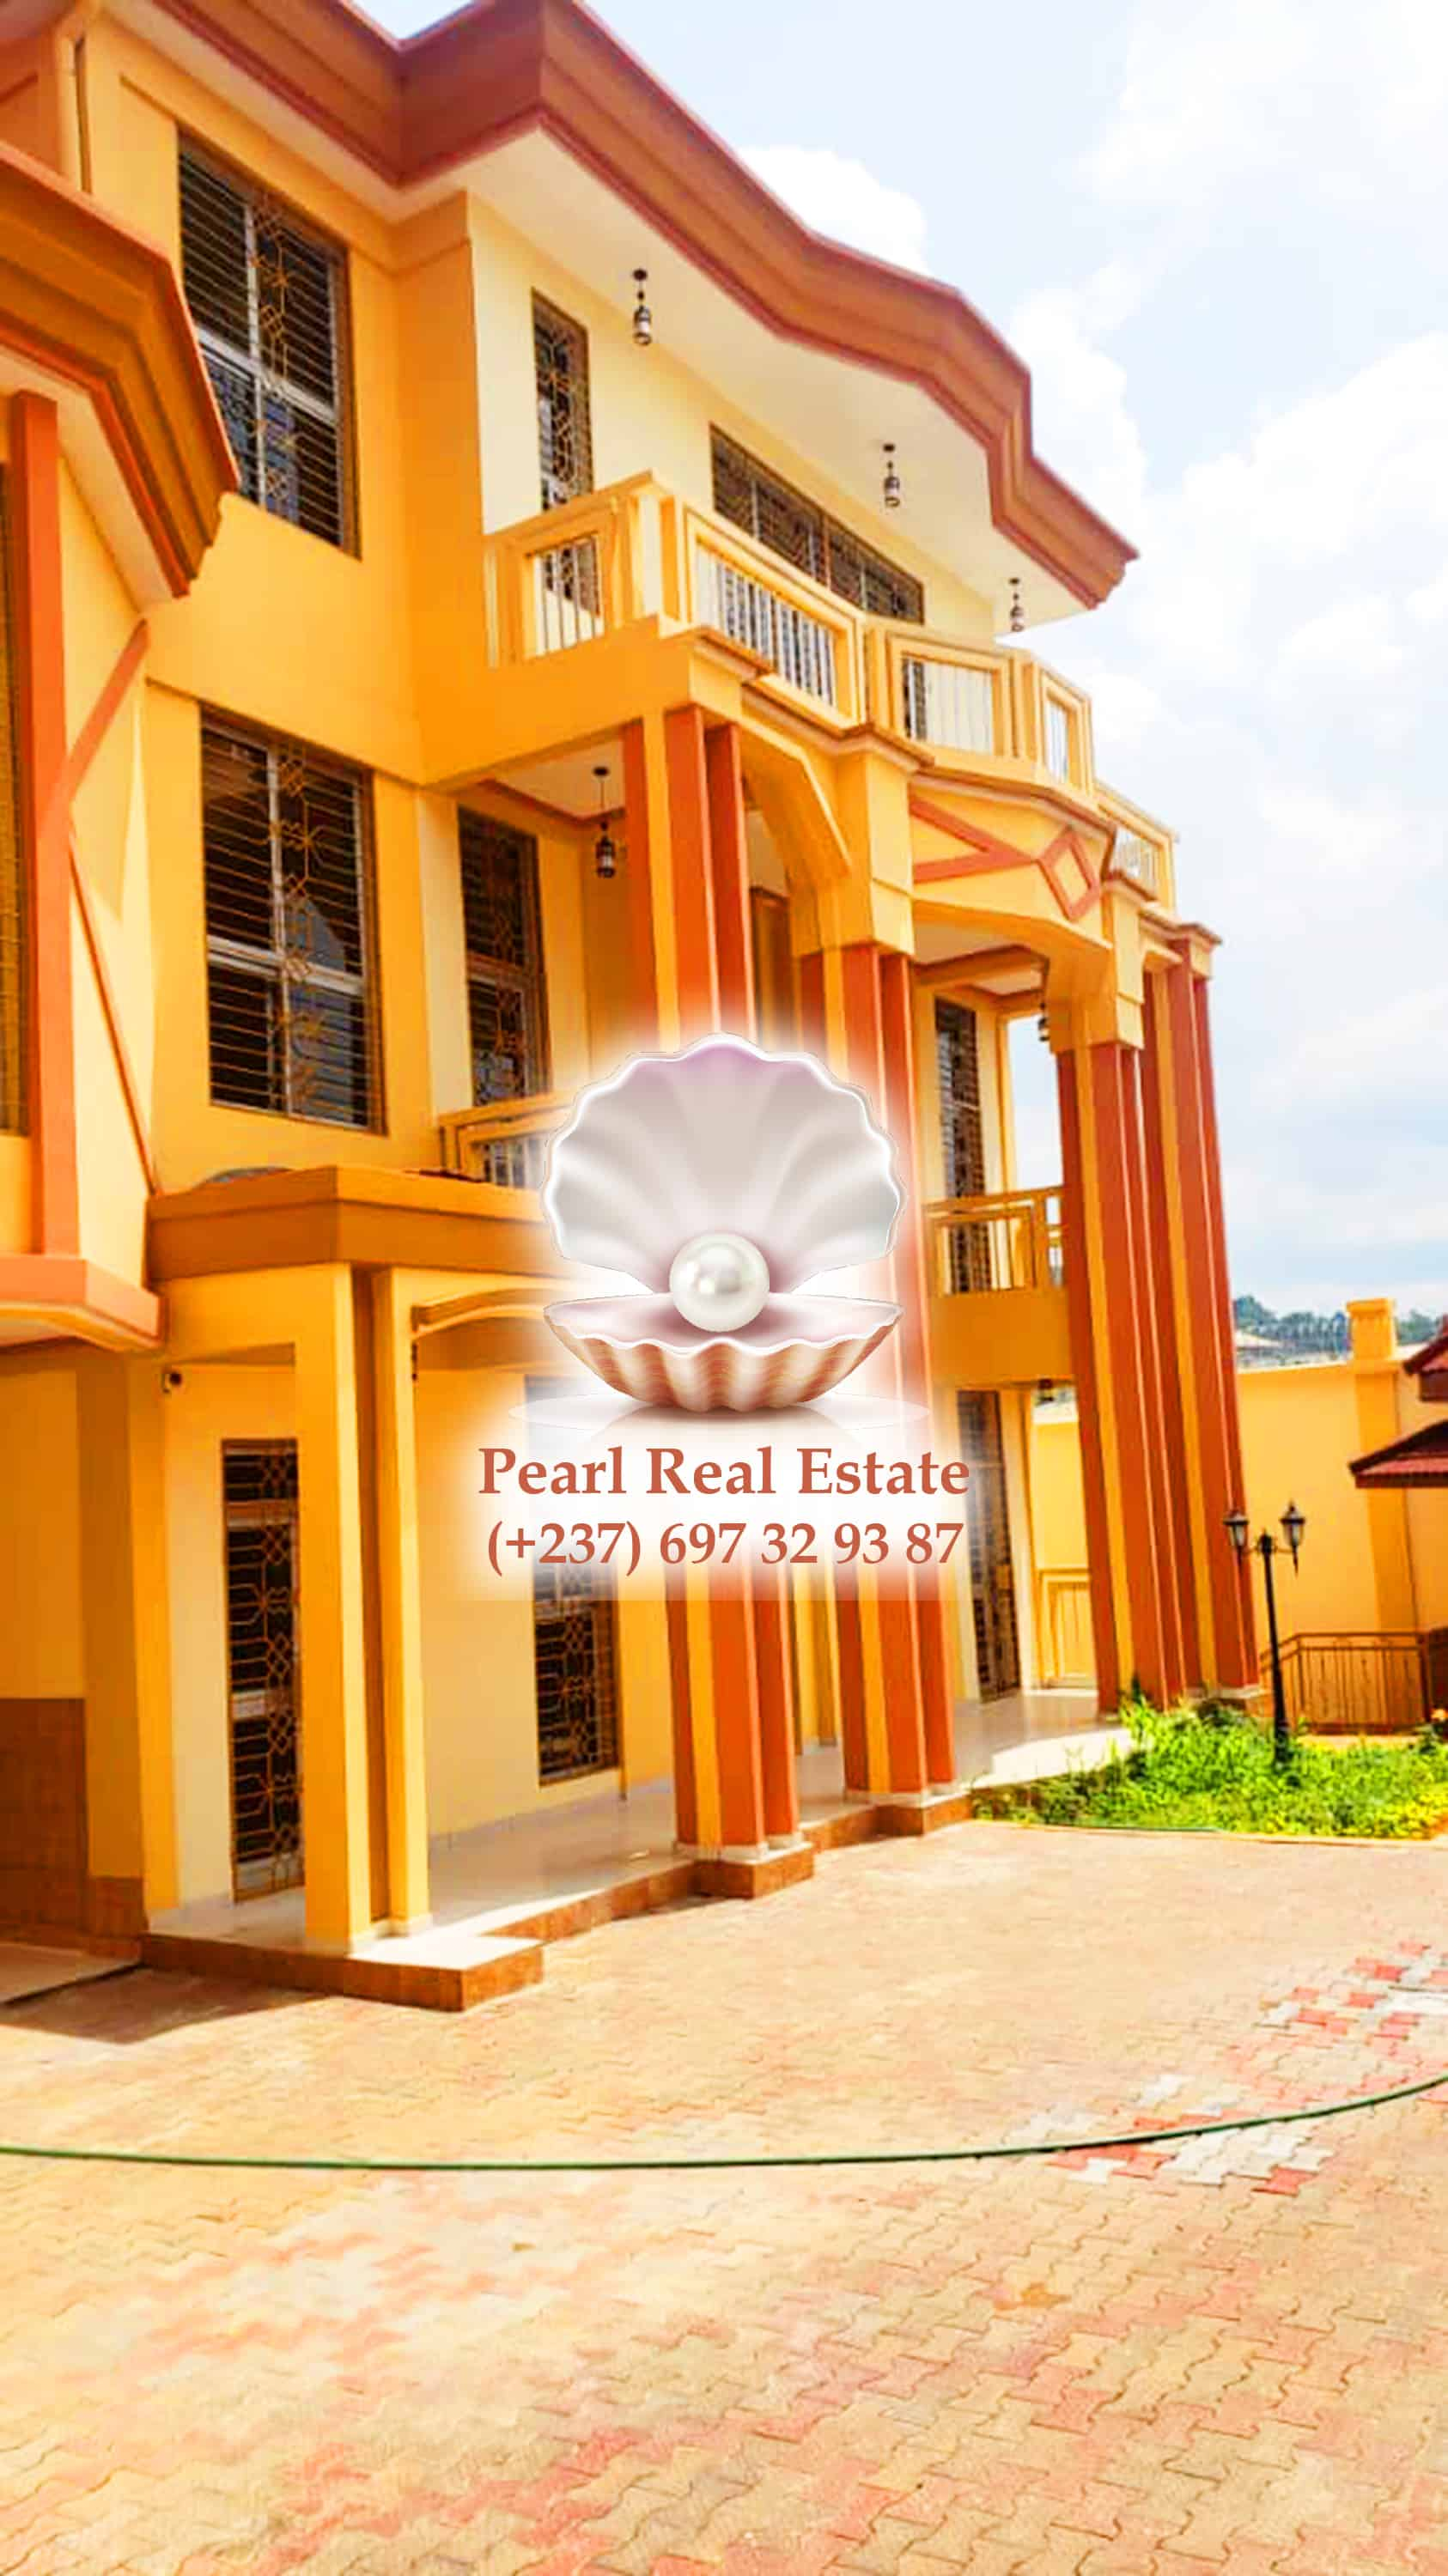 House (Duplex) to rent - Yaoundé, Bastos, Bastos - 1 living room(s), 5 bedroom(s), 2 bathroom(s) - 2 000 000 FCFA / month